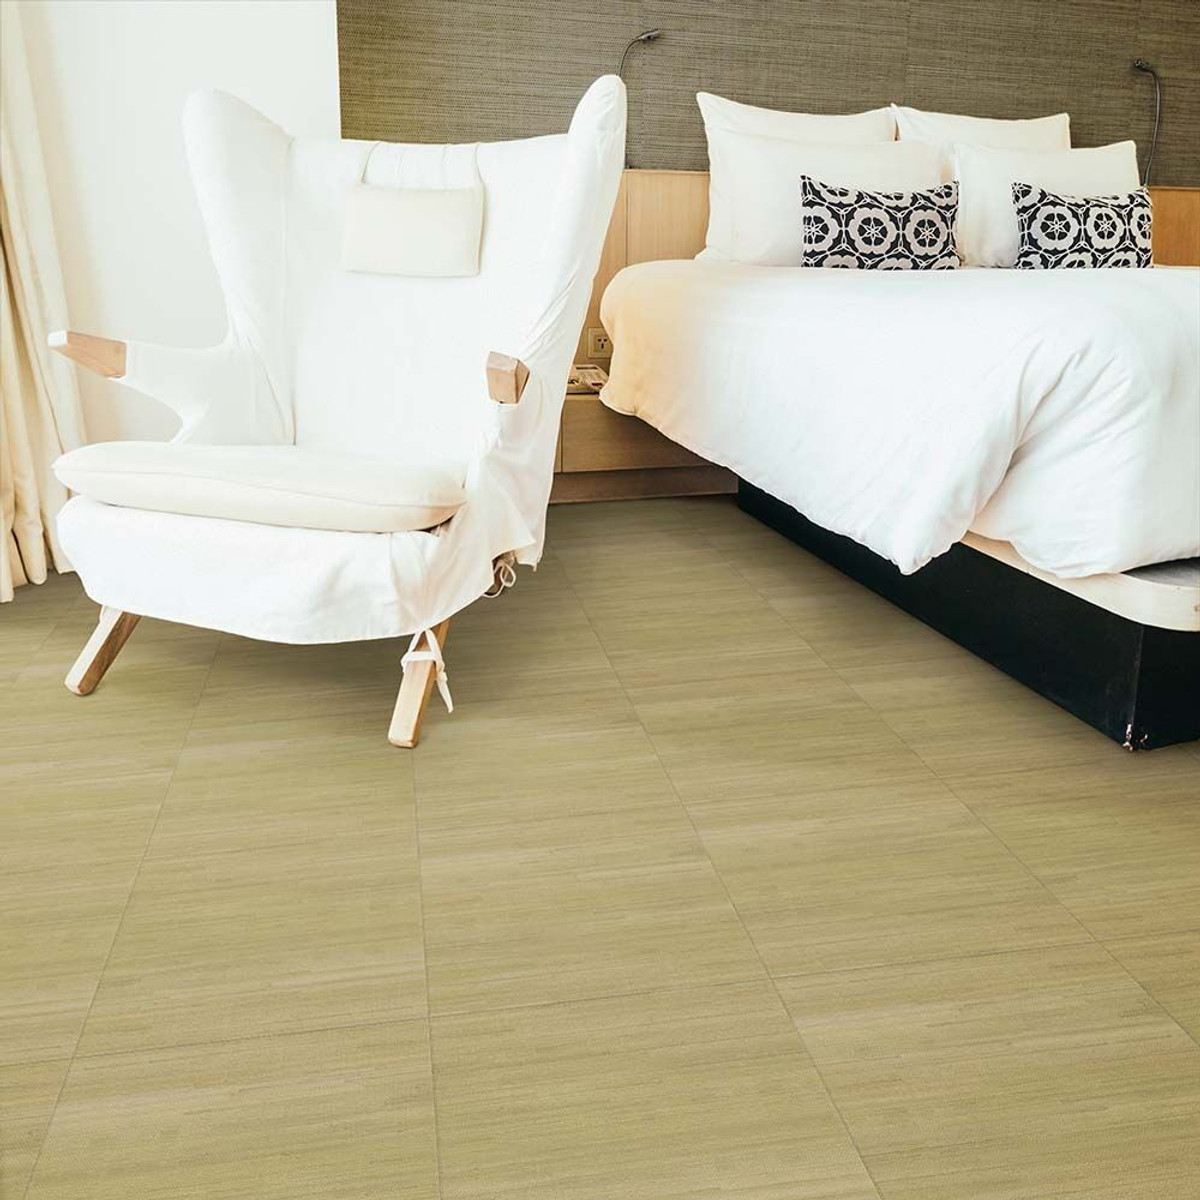 of furniture and tile luxury floor floors elegant perfection